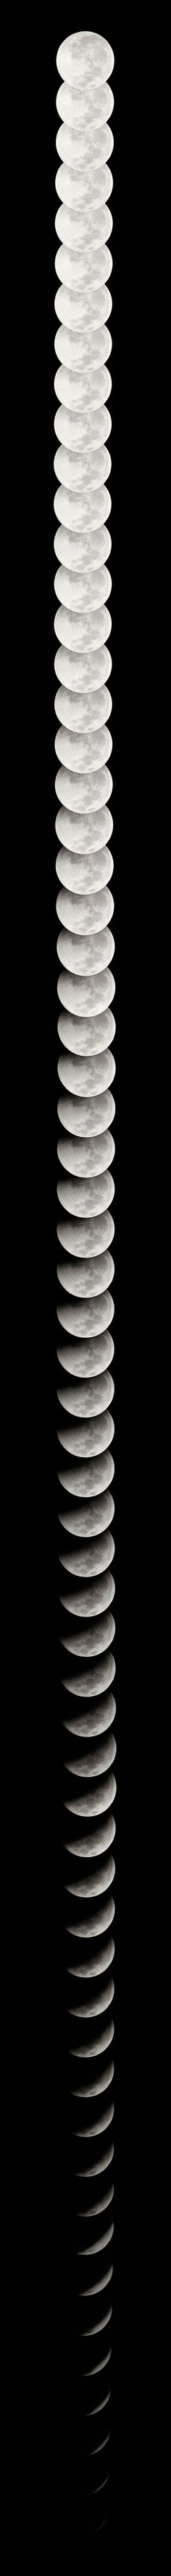 Lunar Eclipse by Sam Javanrough... 61 photos of the December 21st, 2010 lunar eclipse